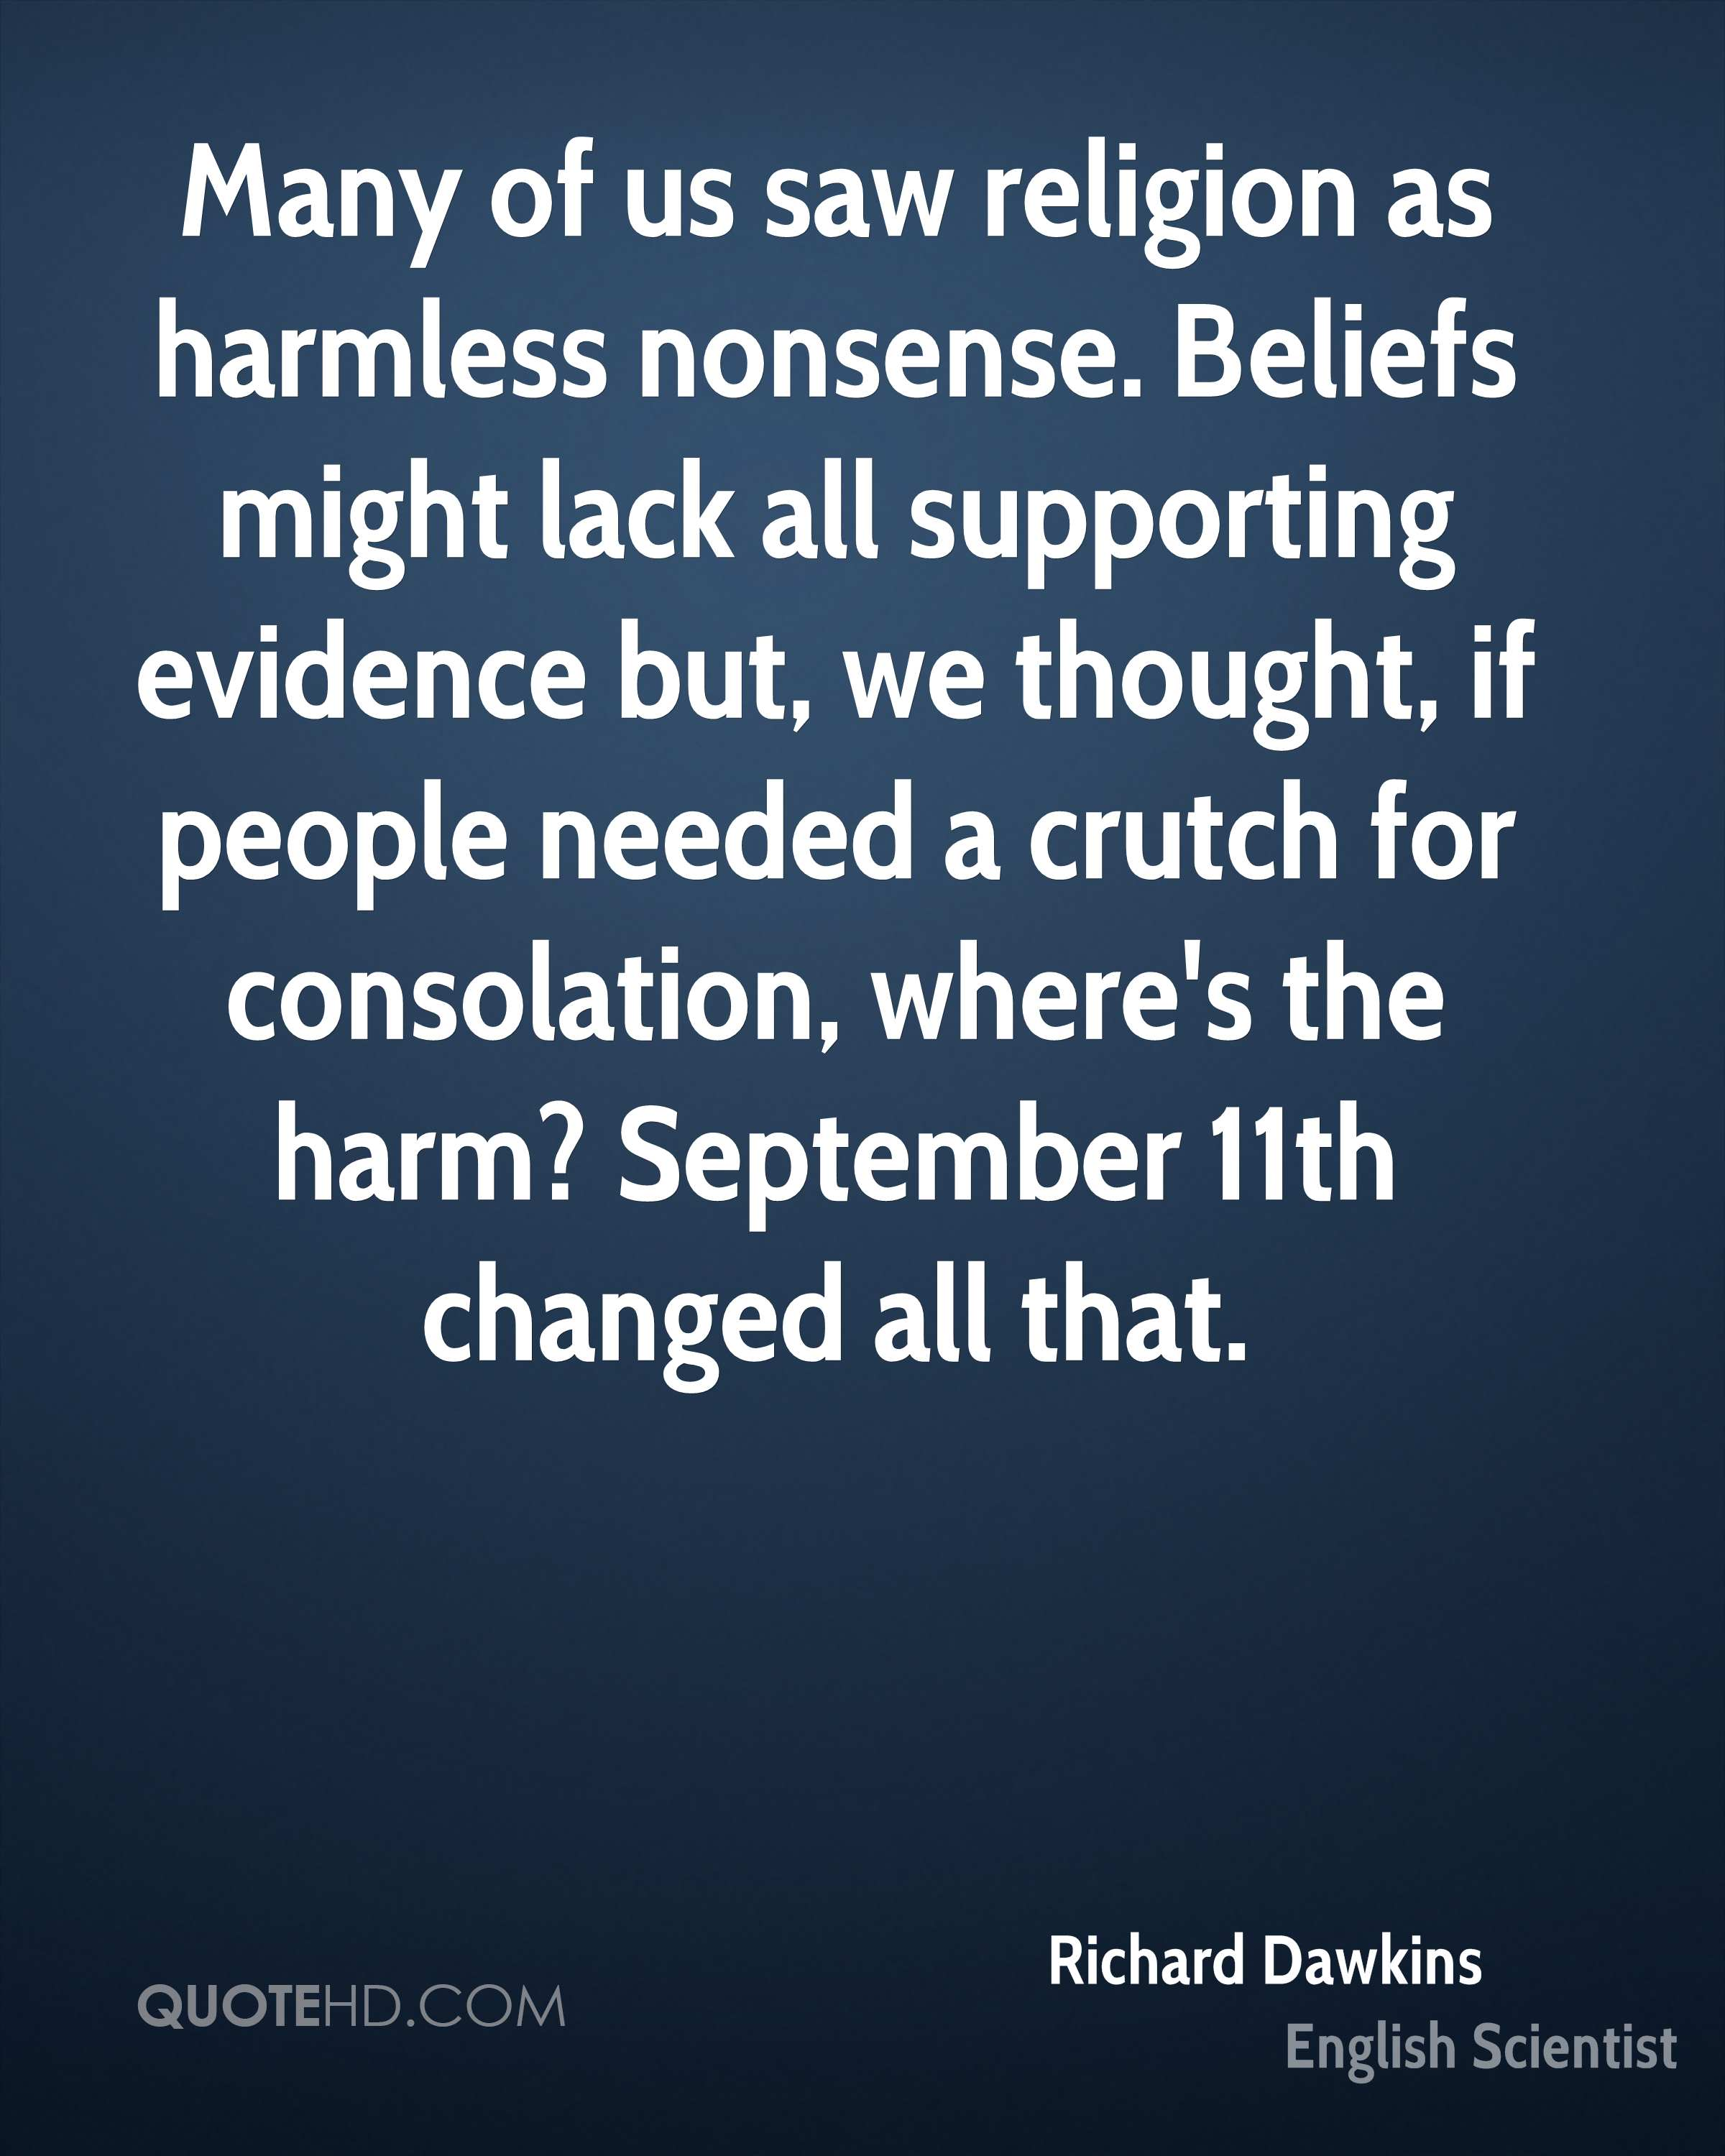 Many of us saw religion as harmless nonsense. Beliefs might lack all supporting evidence but, we thought, if people needed a crutch for consolation, where's the harm? September 11th changed all that.